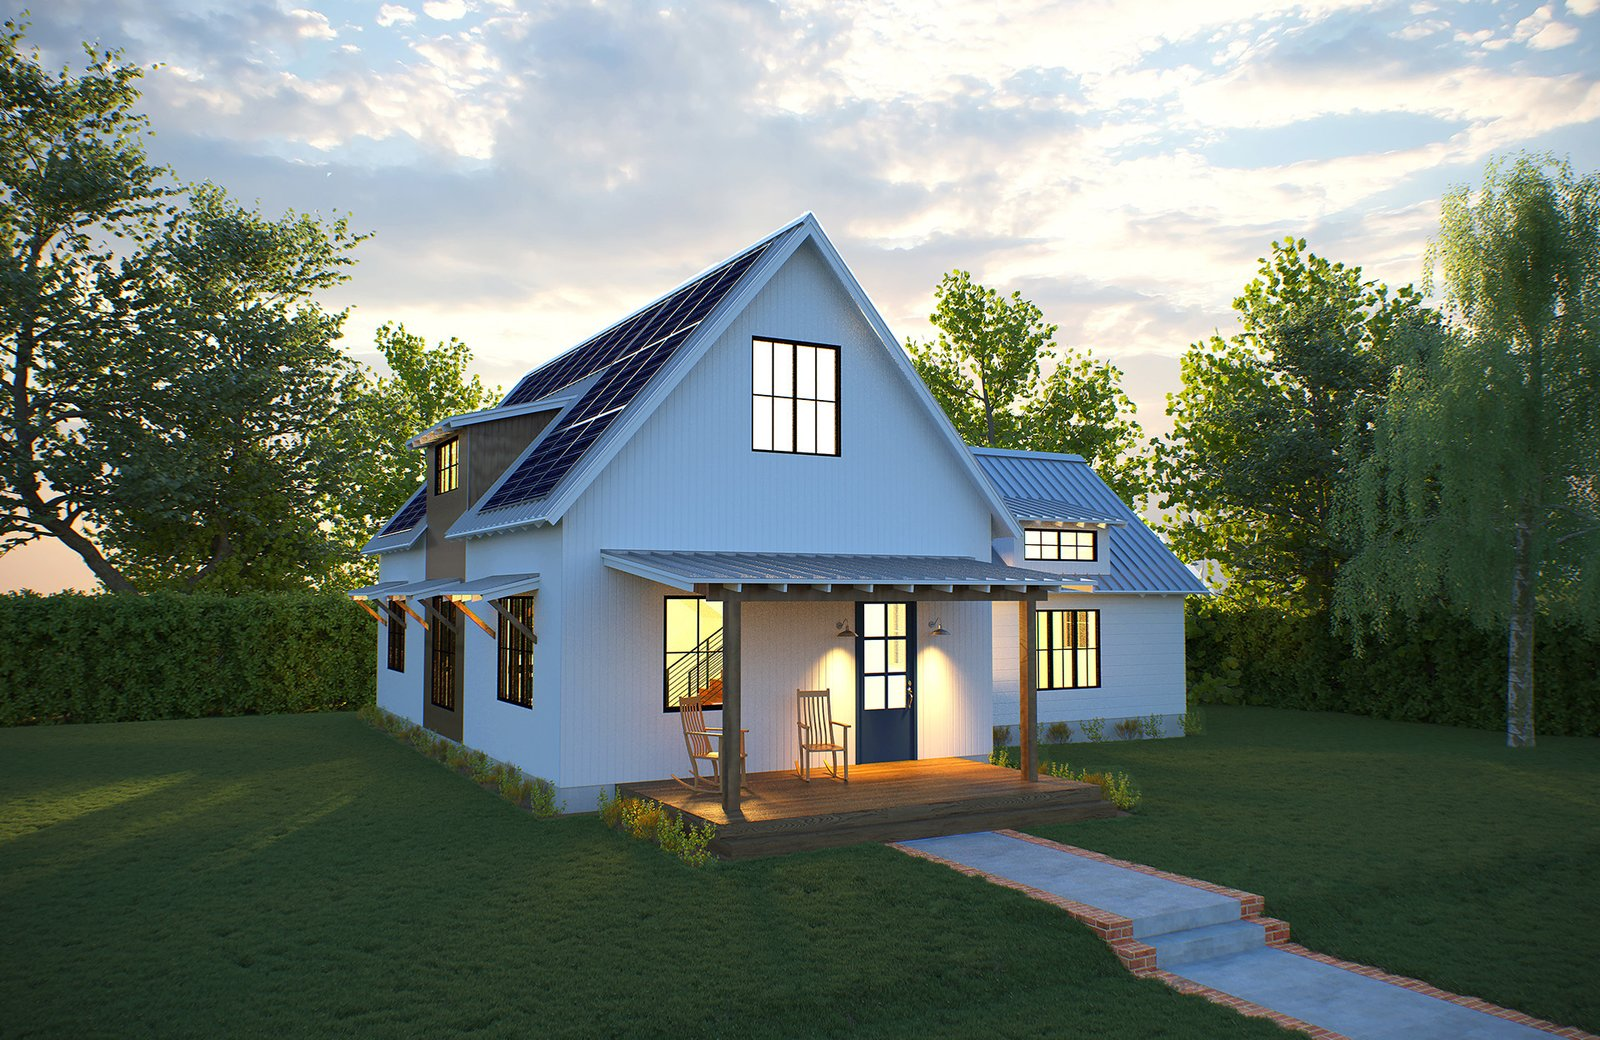 Photo 1 of 5 in Deltec Homes Introduces Two New Models, Including Modern Farmhouse